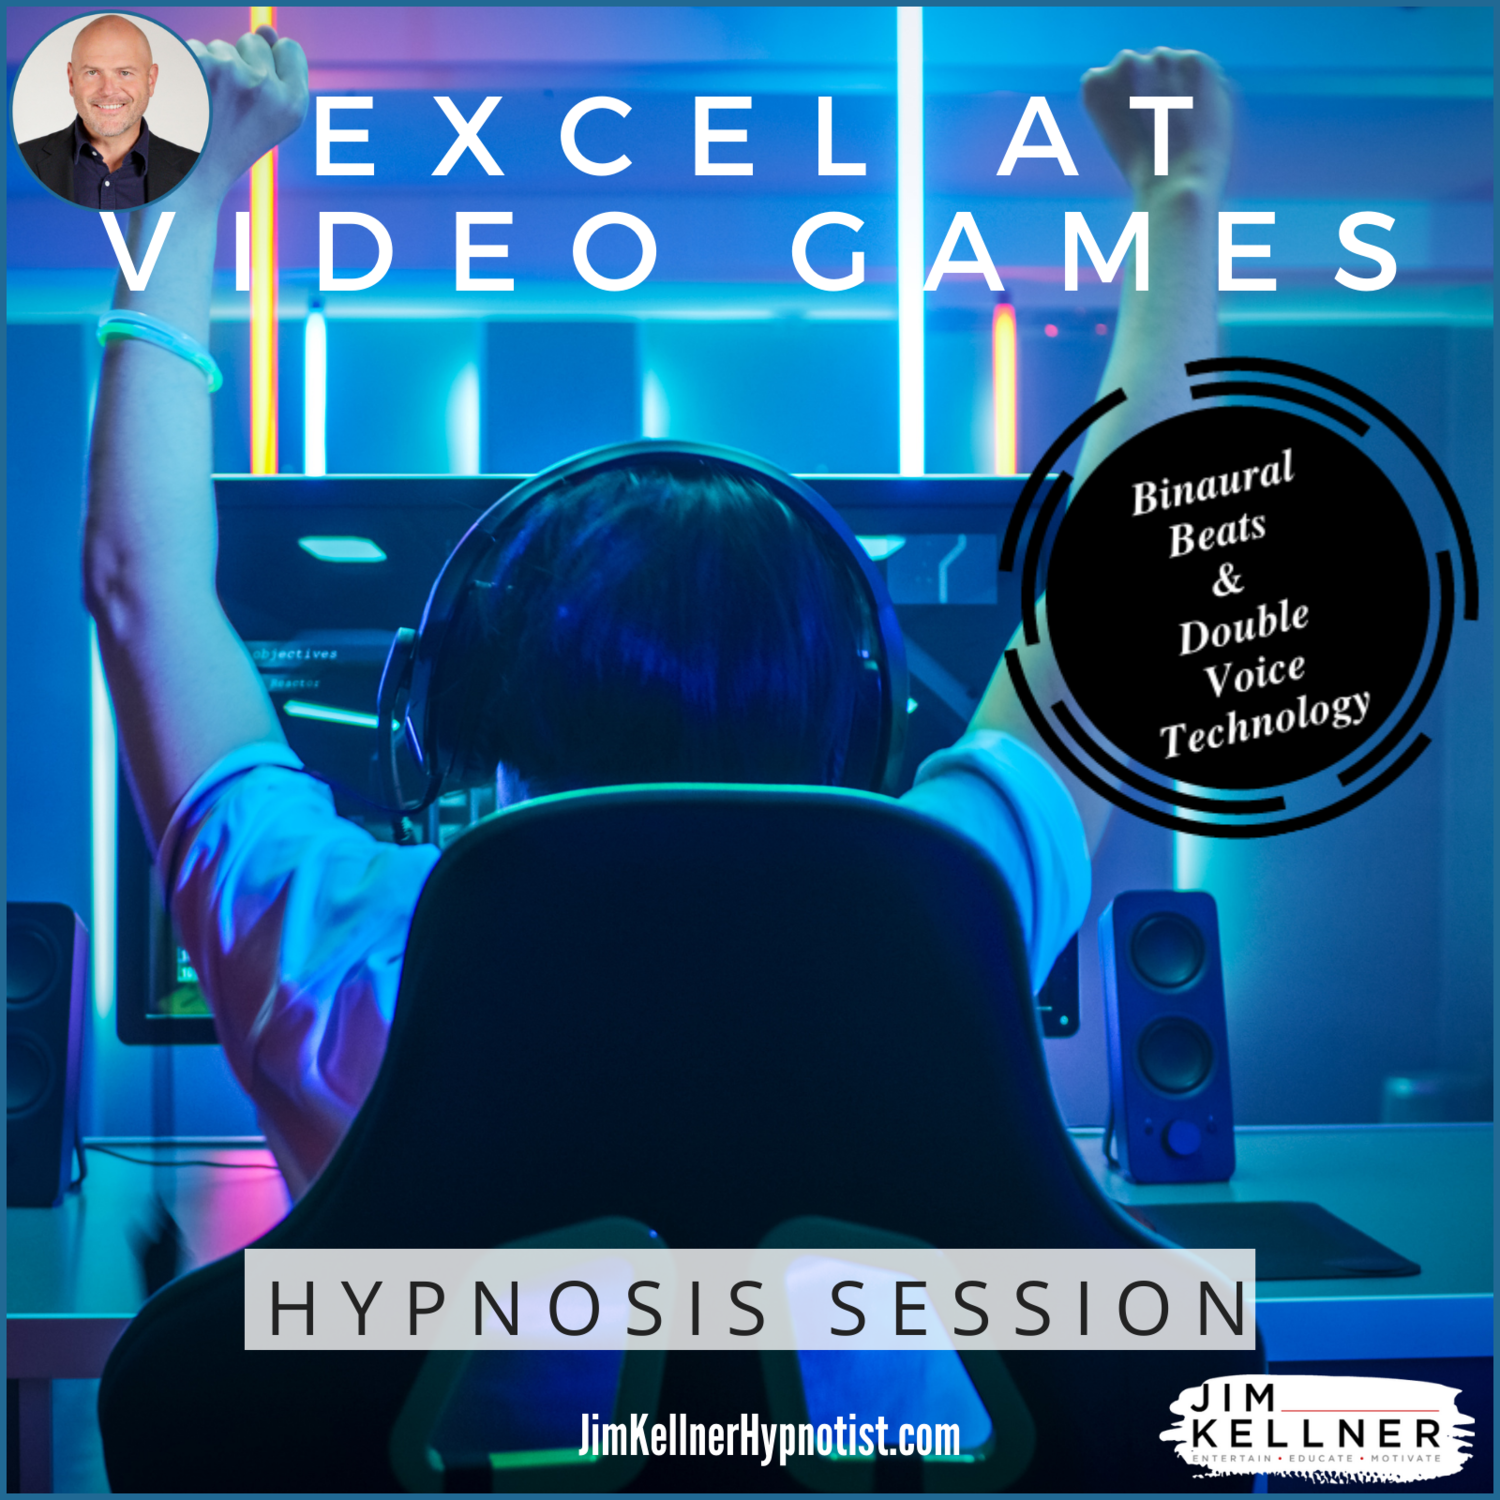 Excel At Video Games